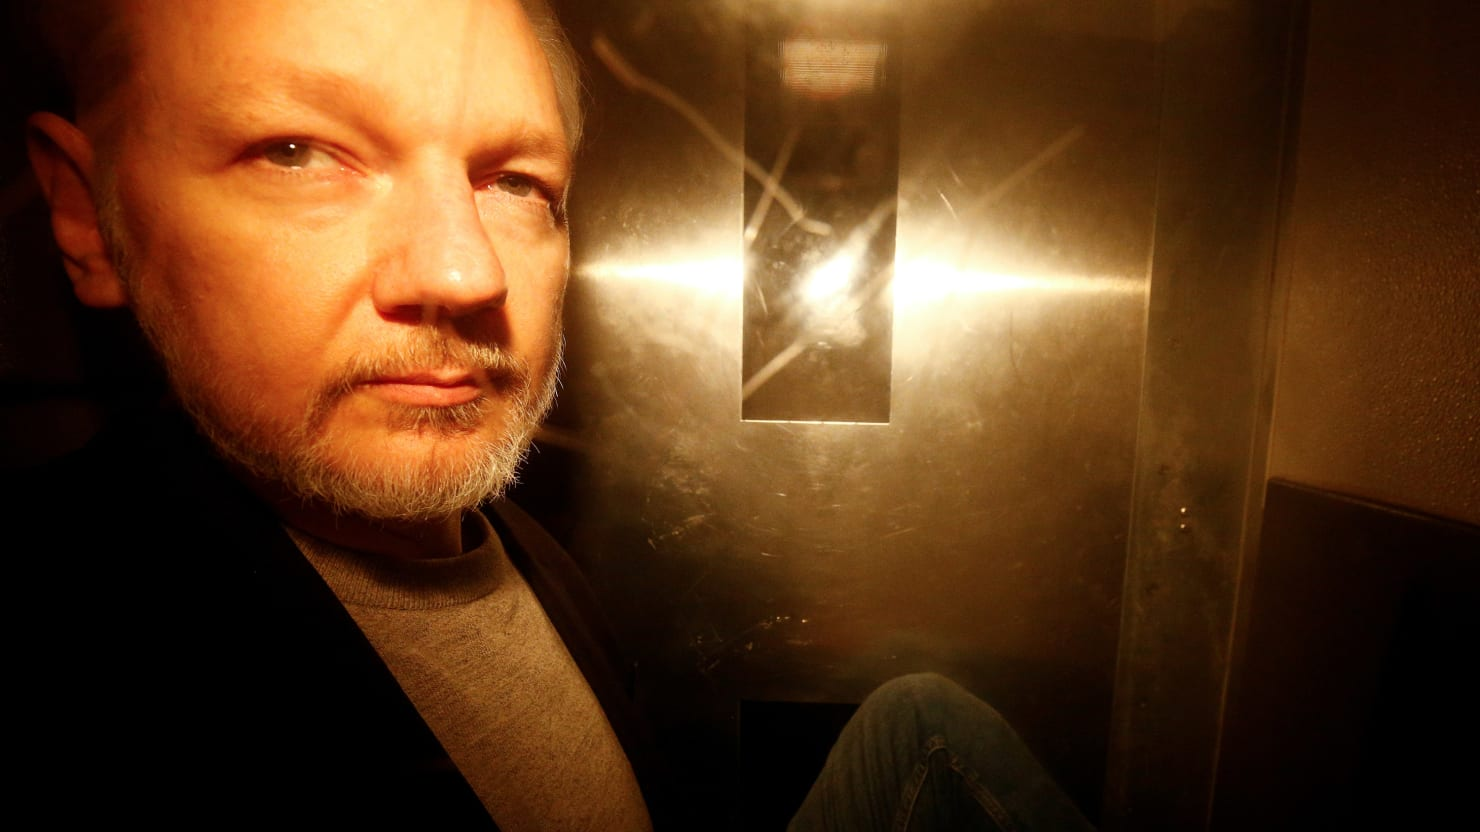 U.S. Charges Assange With Publishing Classified Information, a Move Unprecedented in American History